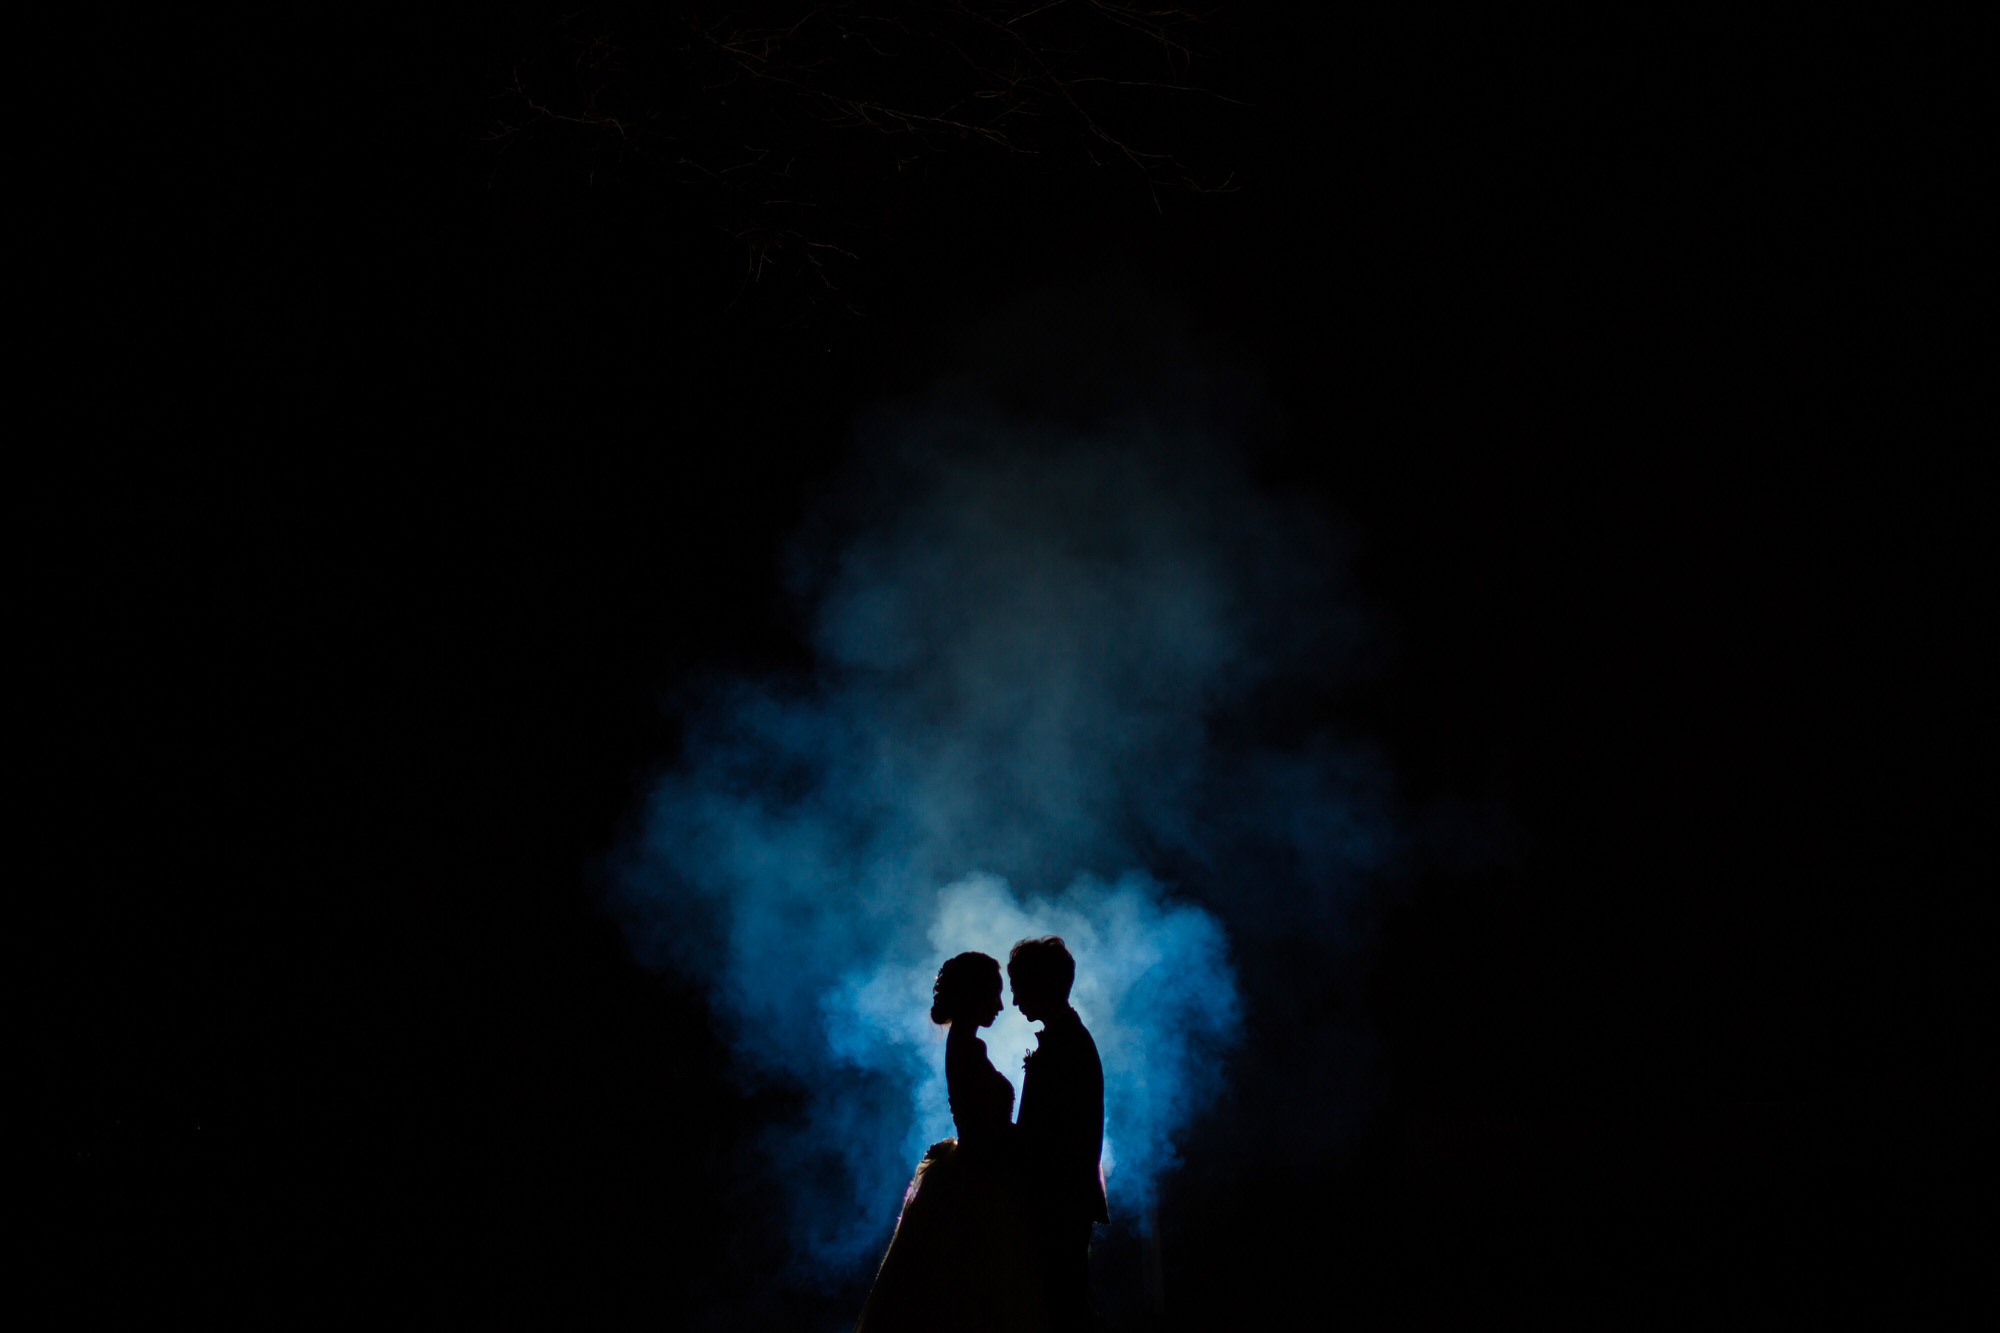 Couple face to face silhouette against blue smoke - photo by Ken Pak